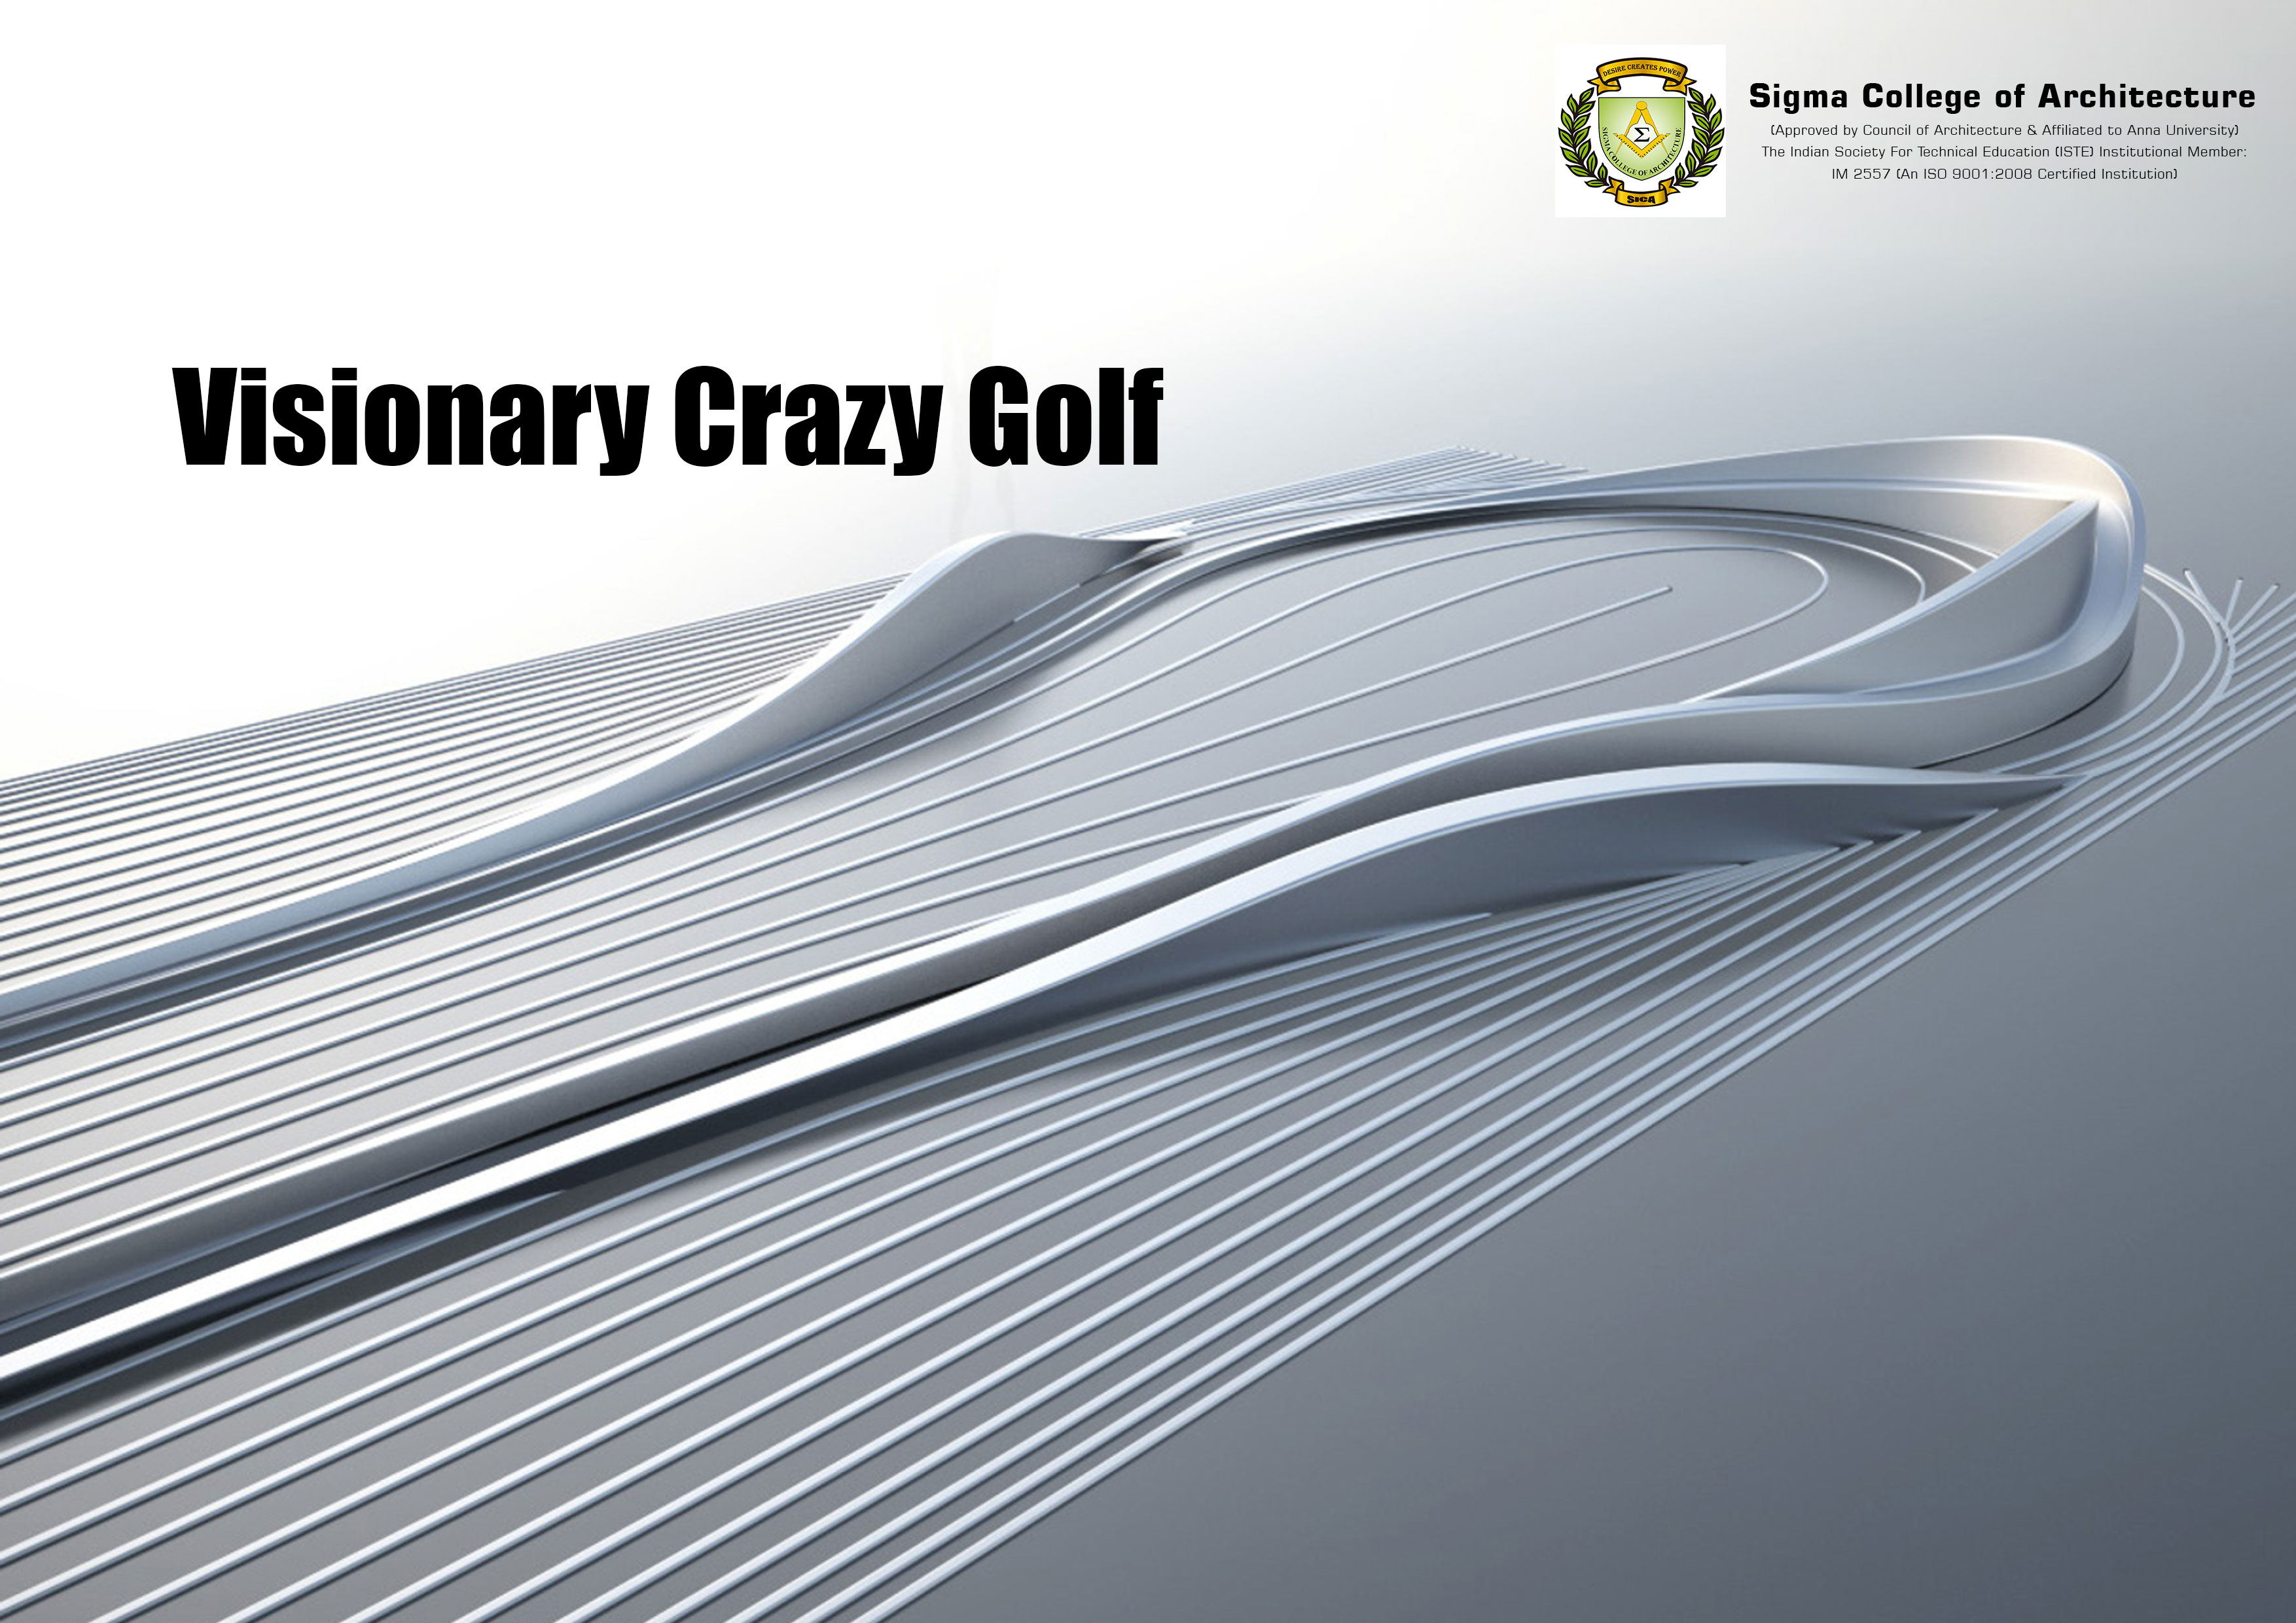 Visionary Crazy Golf